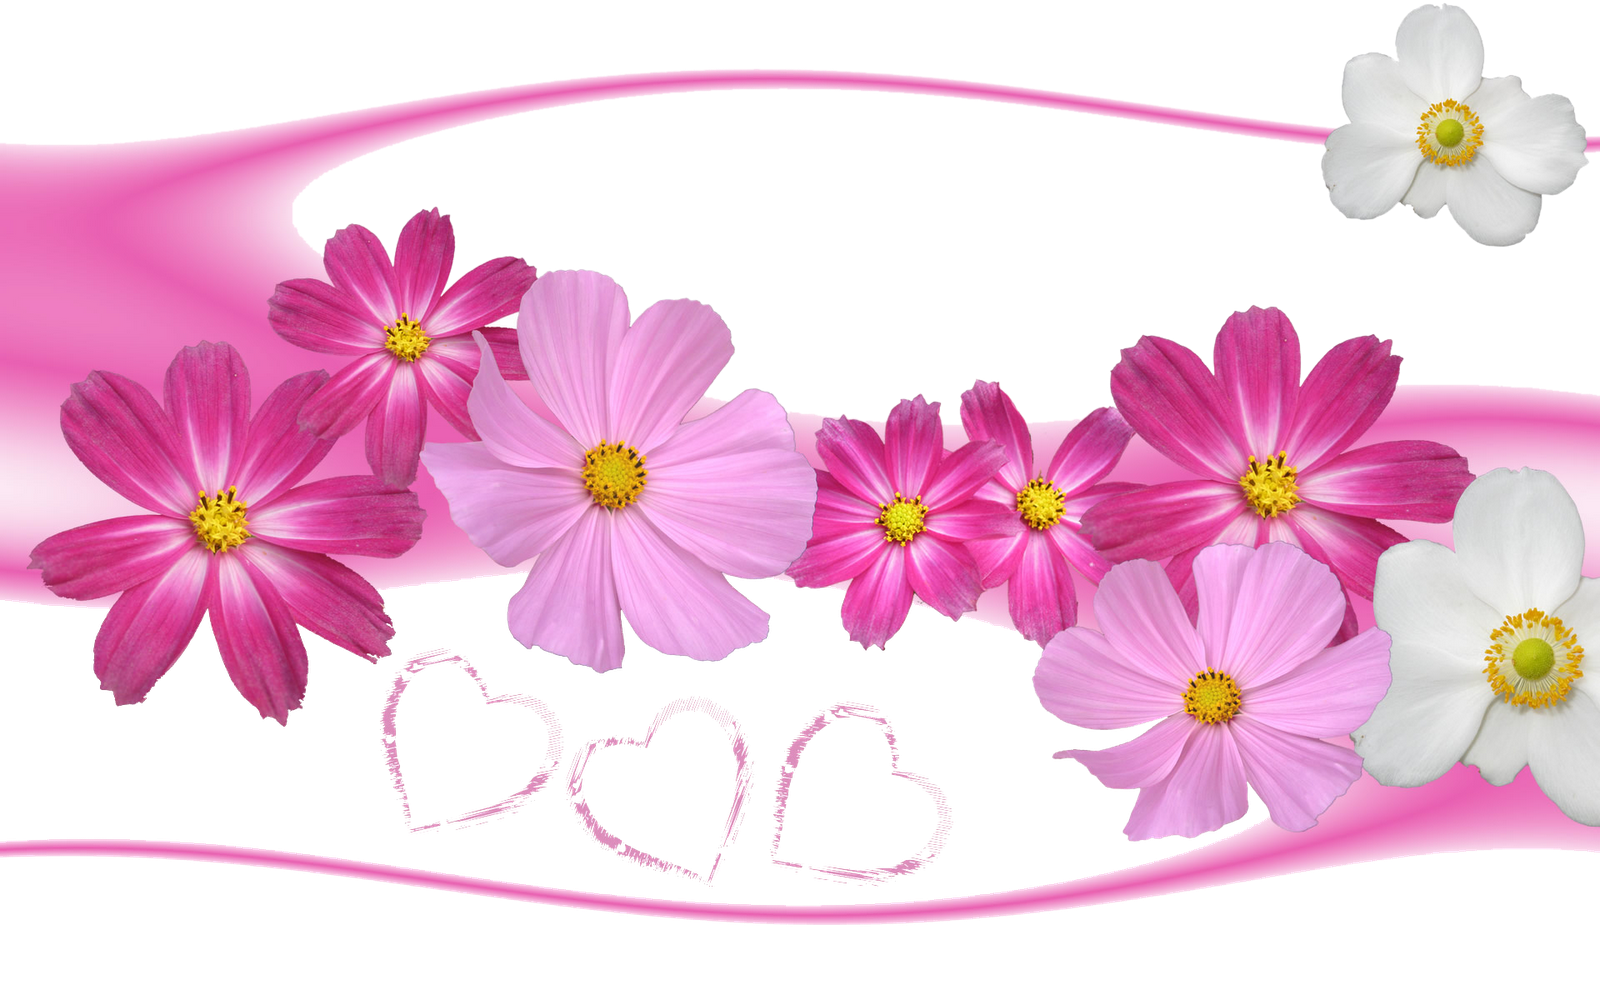 flower-wallpaper-love copy.png' />